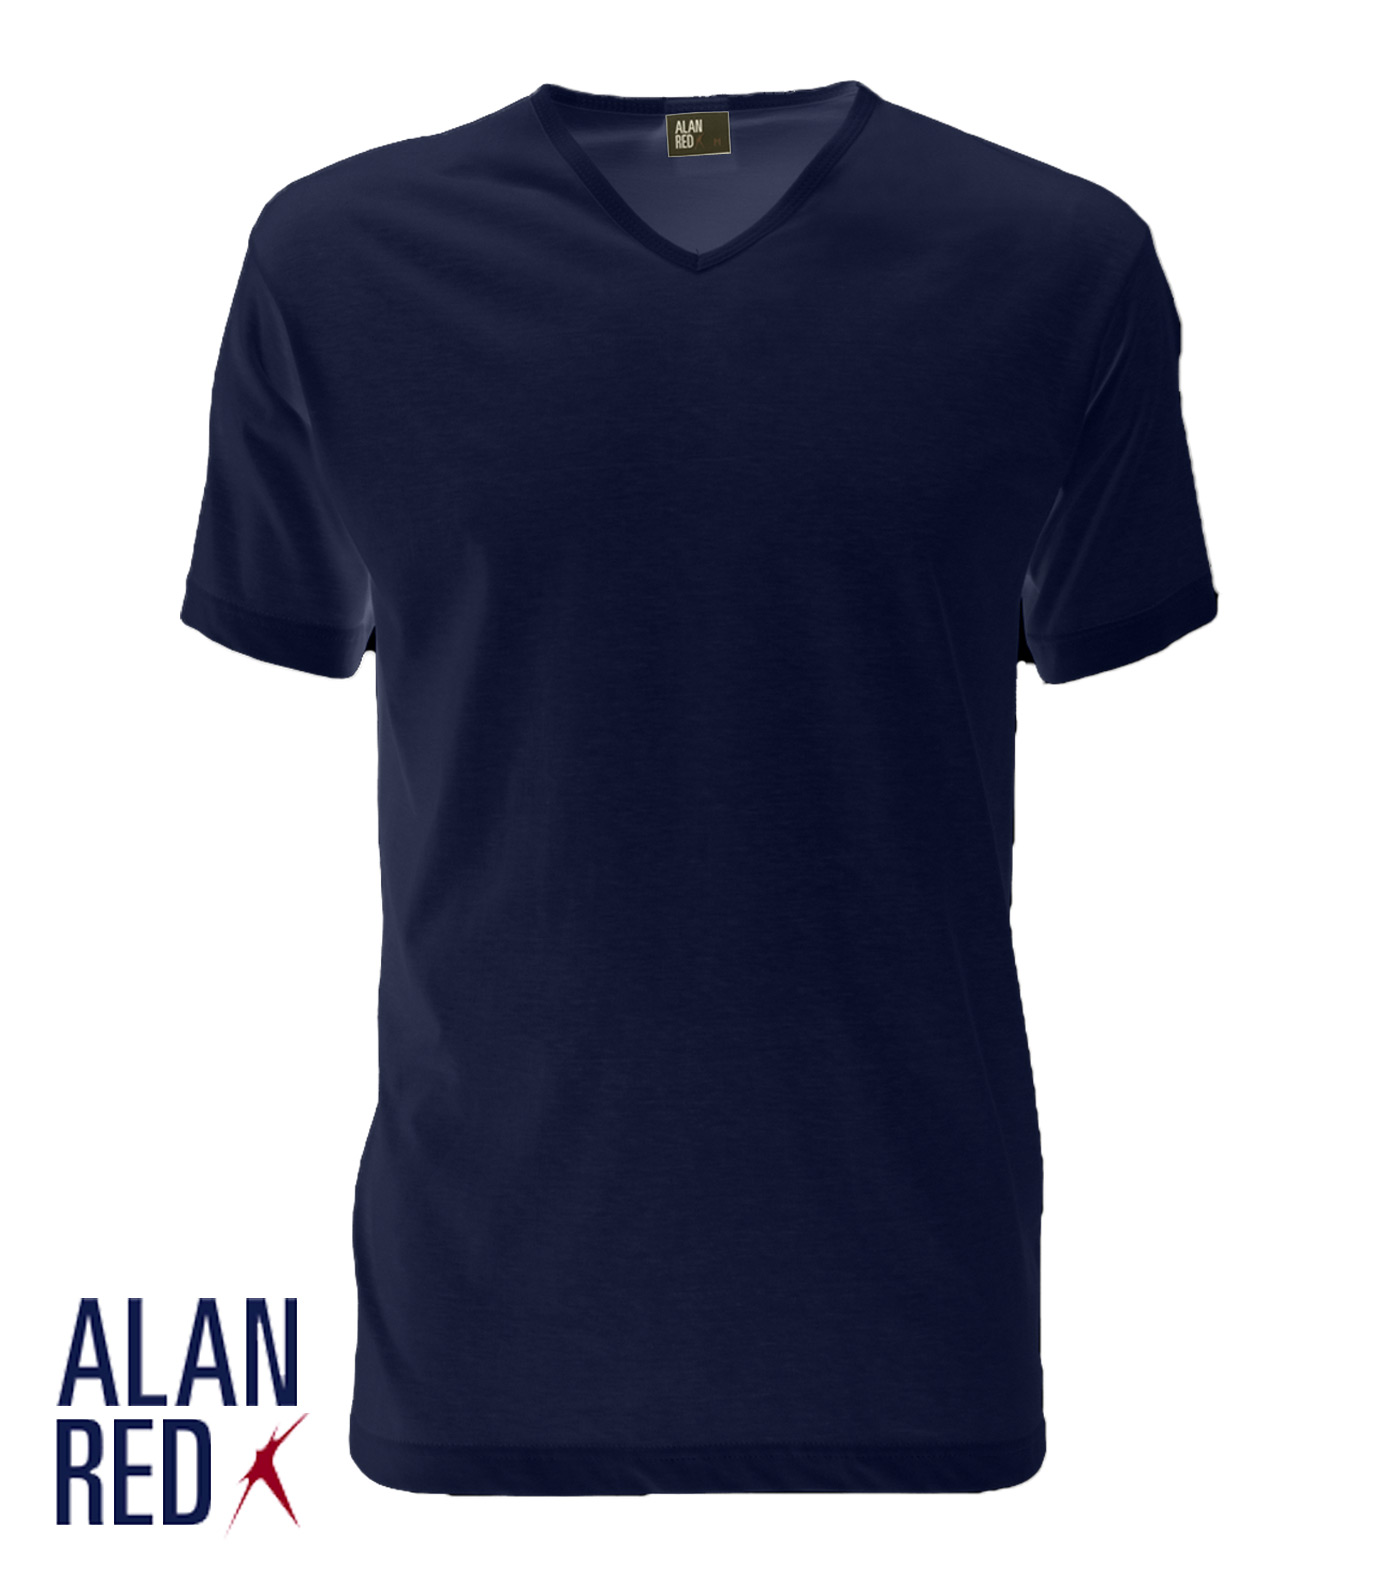 Alan Red T-shirt VERMONT 1-PACK VERMONT 1-PACK marine Maat L